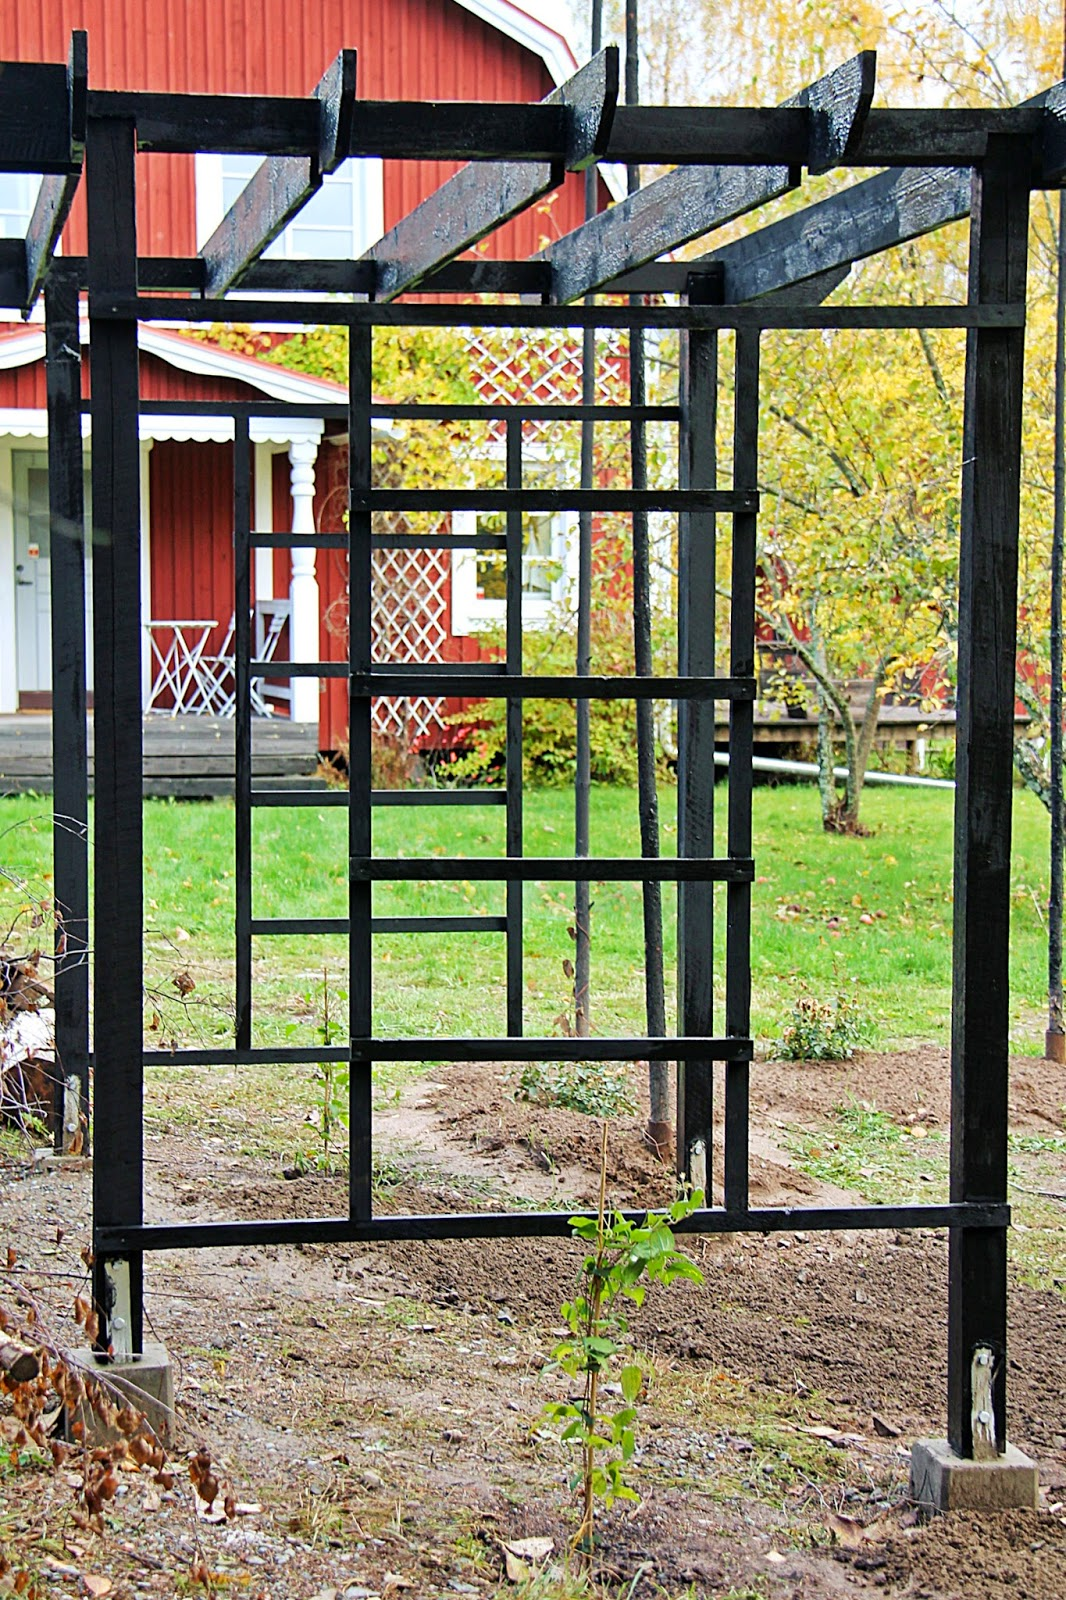 A house with a view: oktober 2014